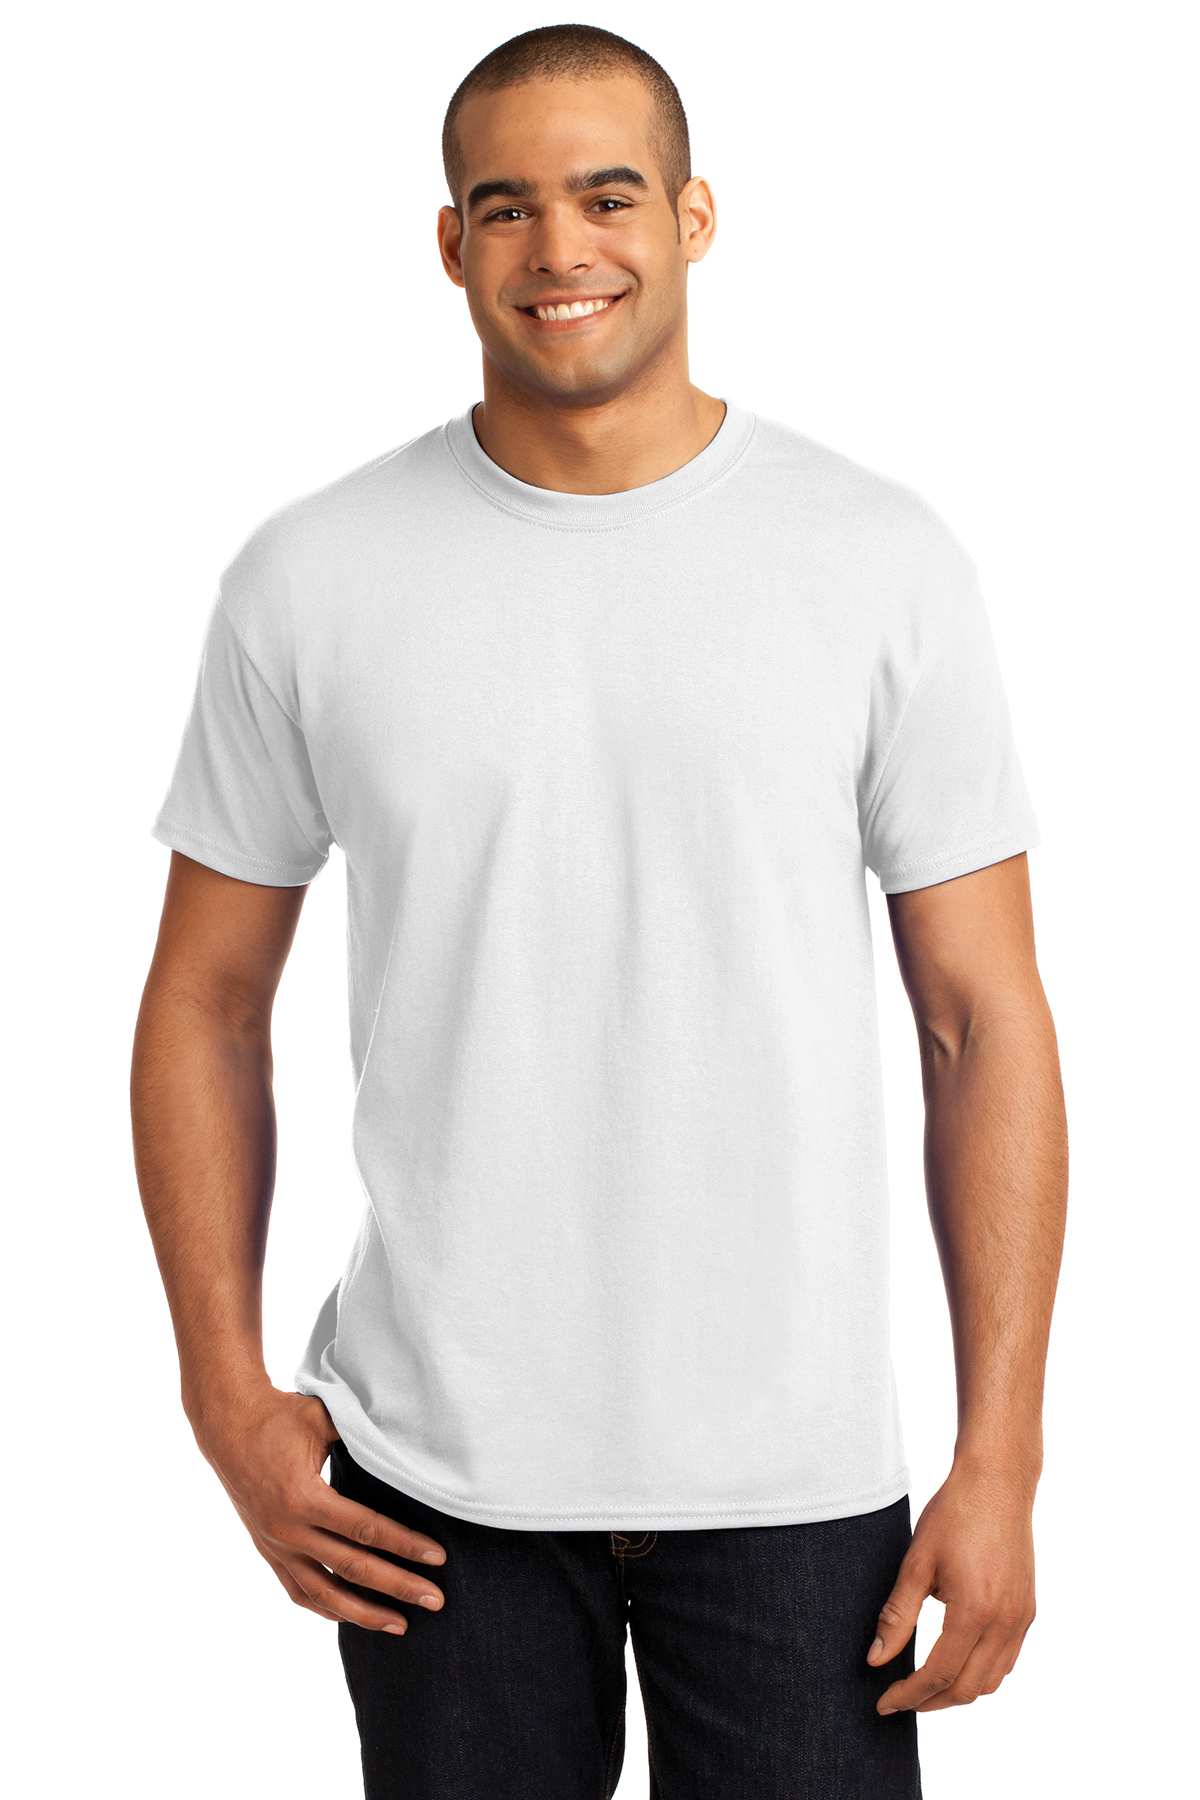 817b5af5ad7 Hanes® - EcoSmart® 50 50 Cotton Poly T-Shirt